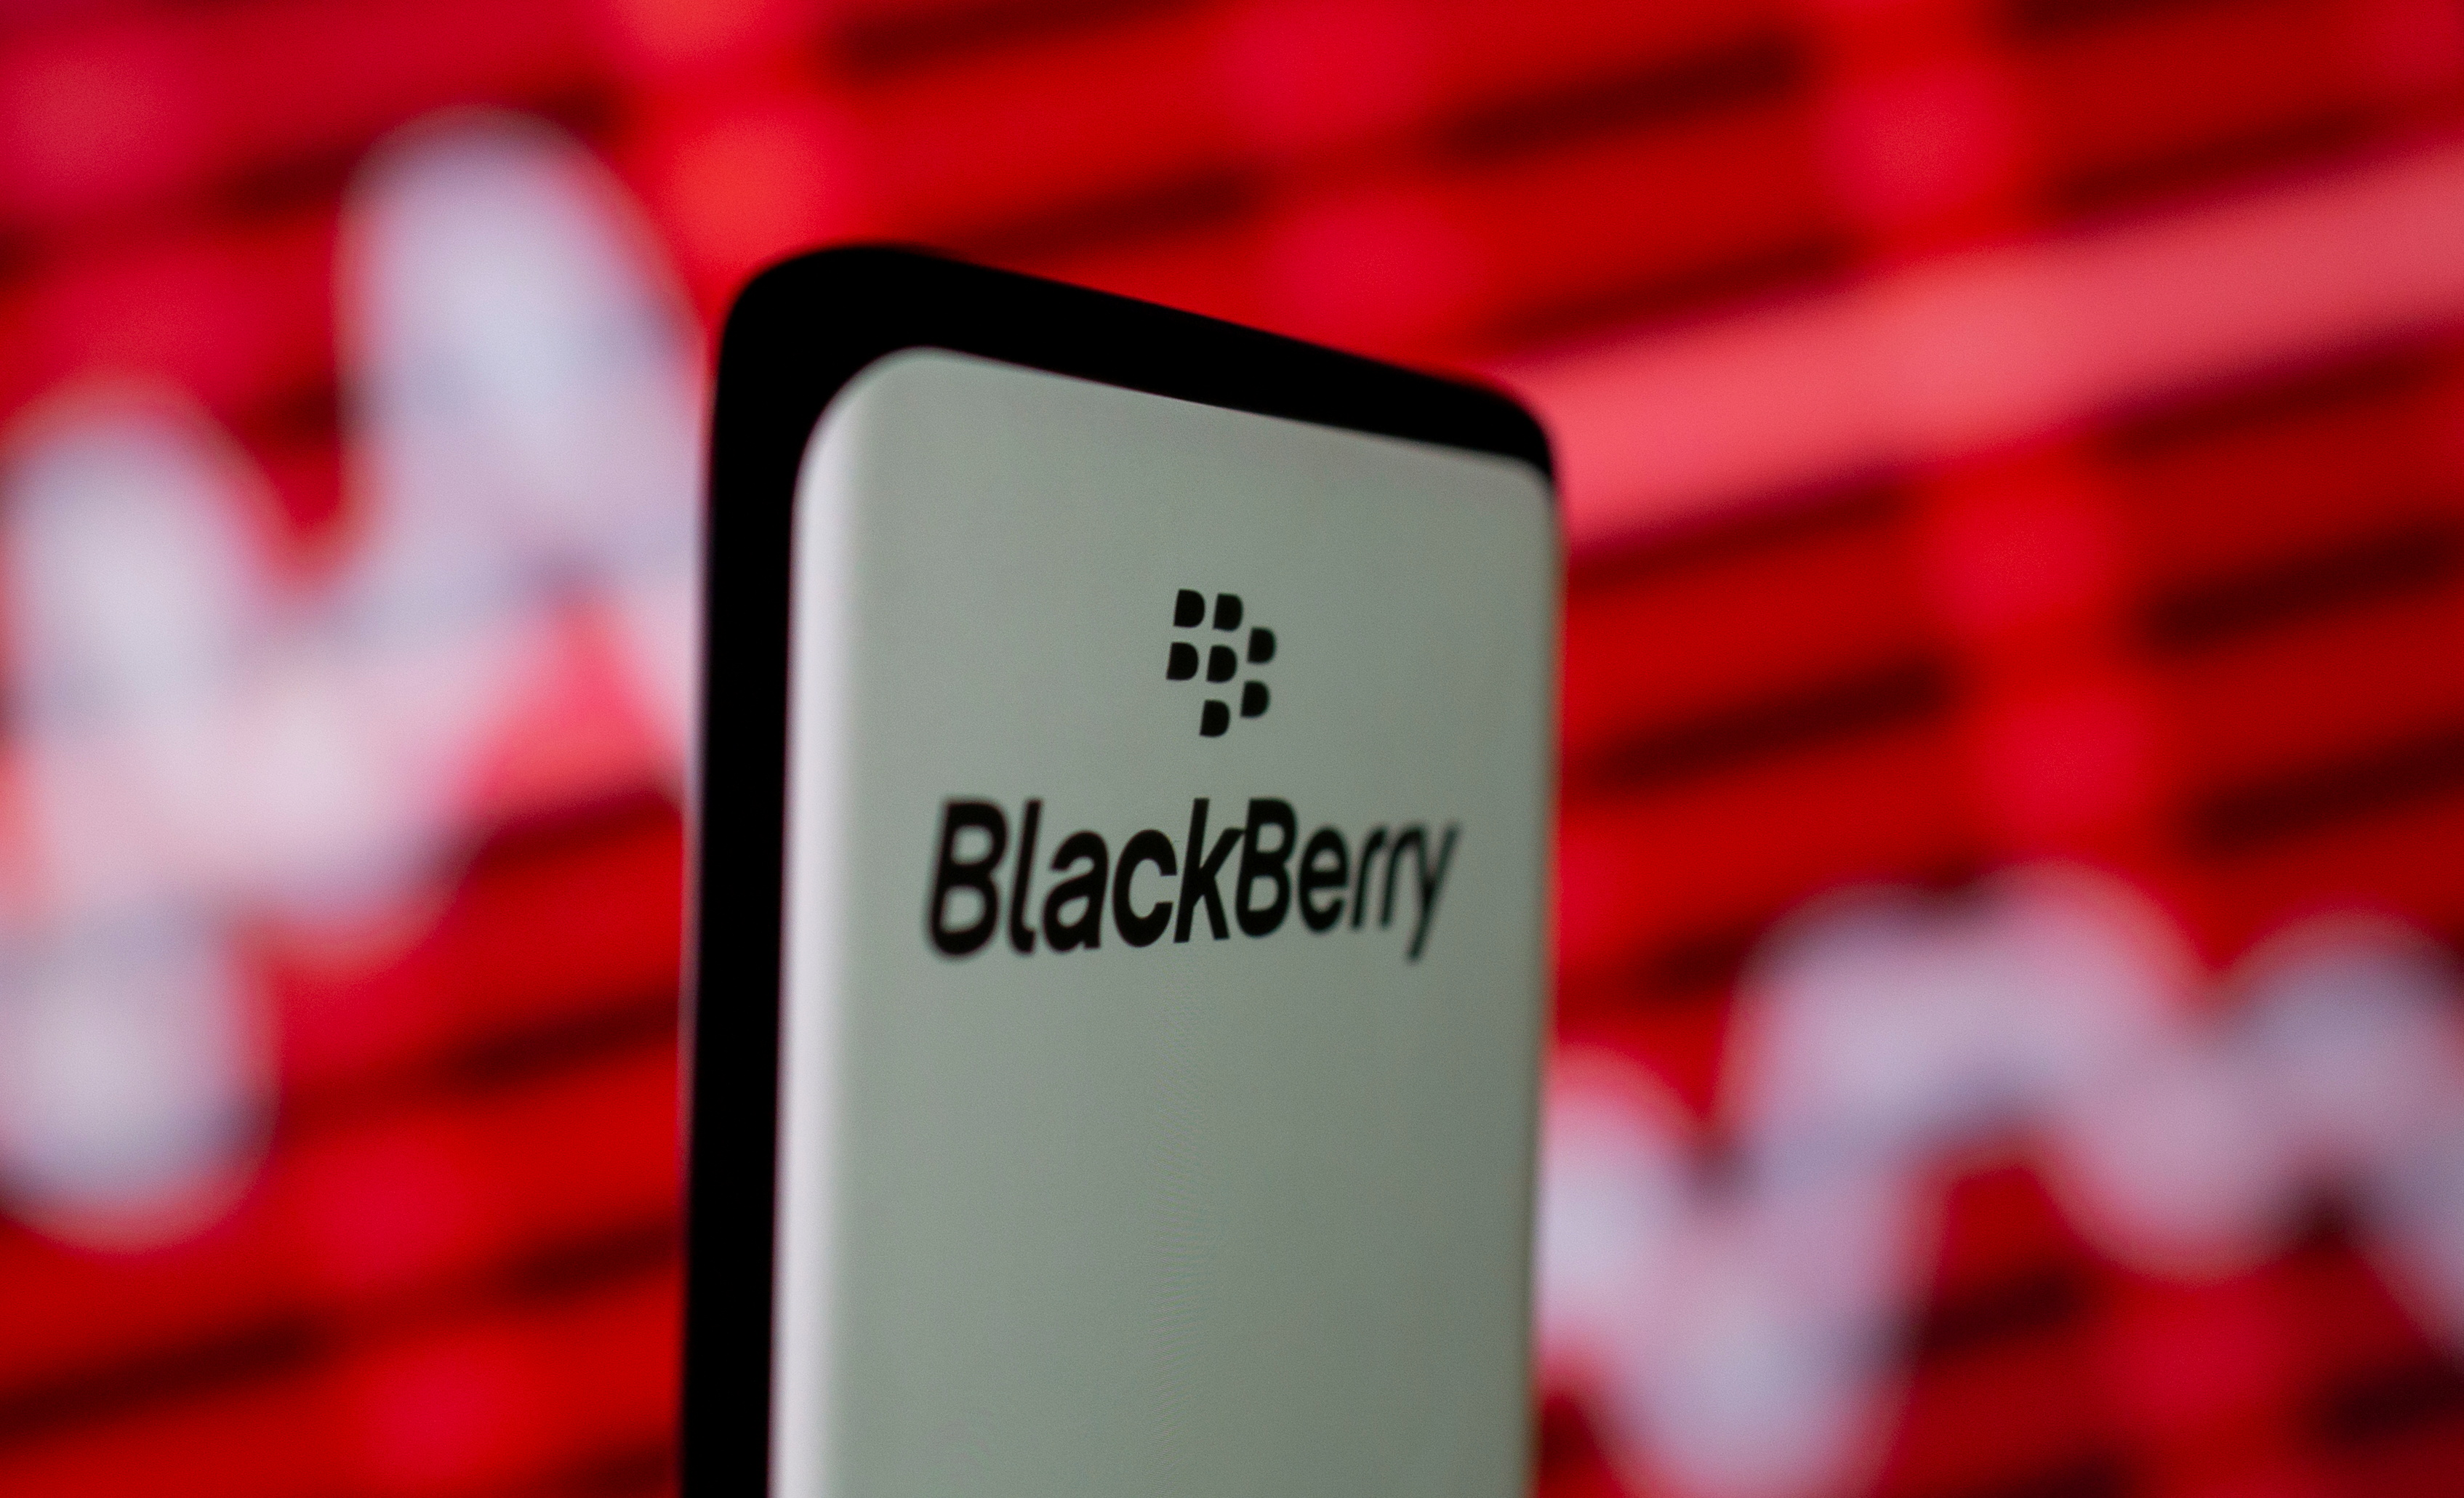 The Blackberry logo is seen on a smartphone in front of a displayed stock graph in this illustration taken February 5, 2021. REUTERS/Dado Ruvic/Illustration